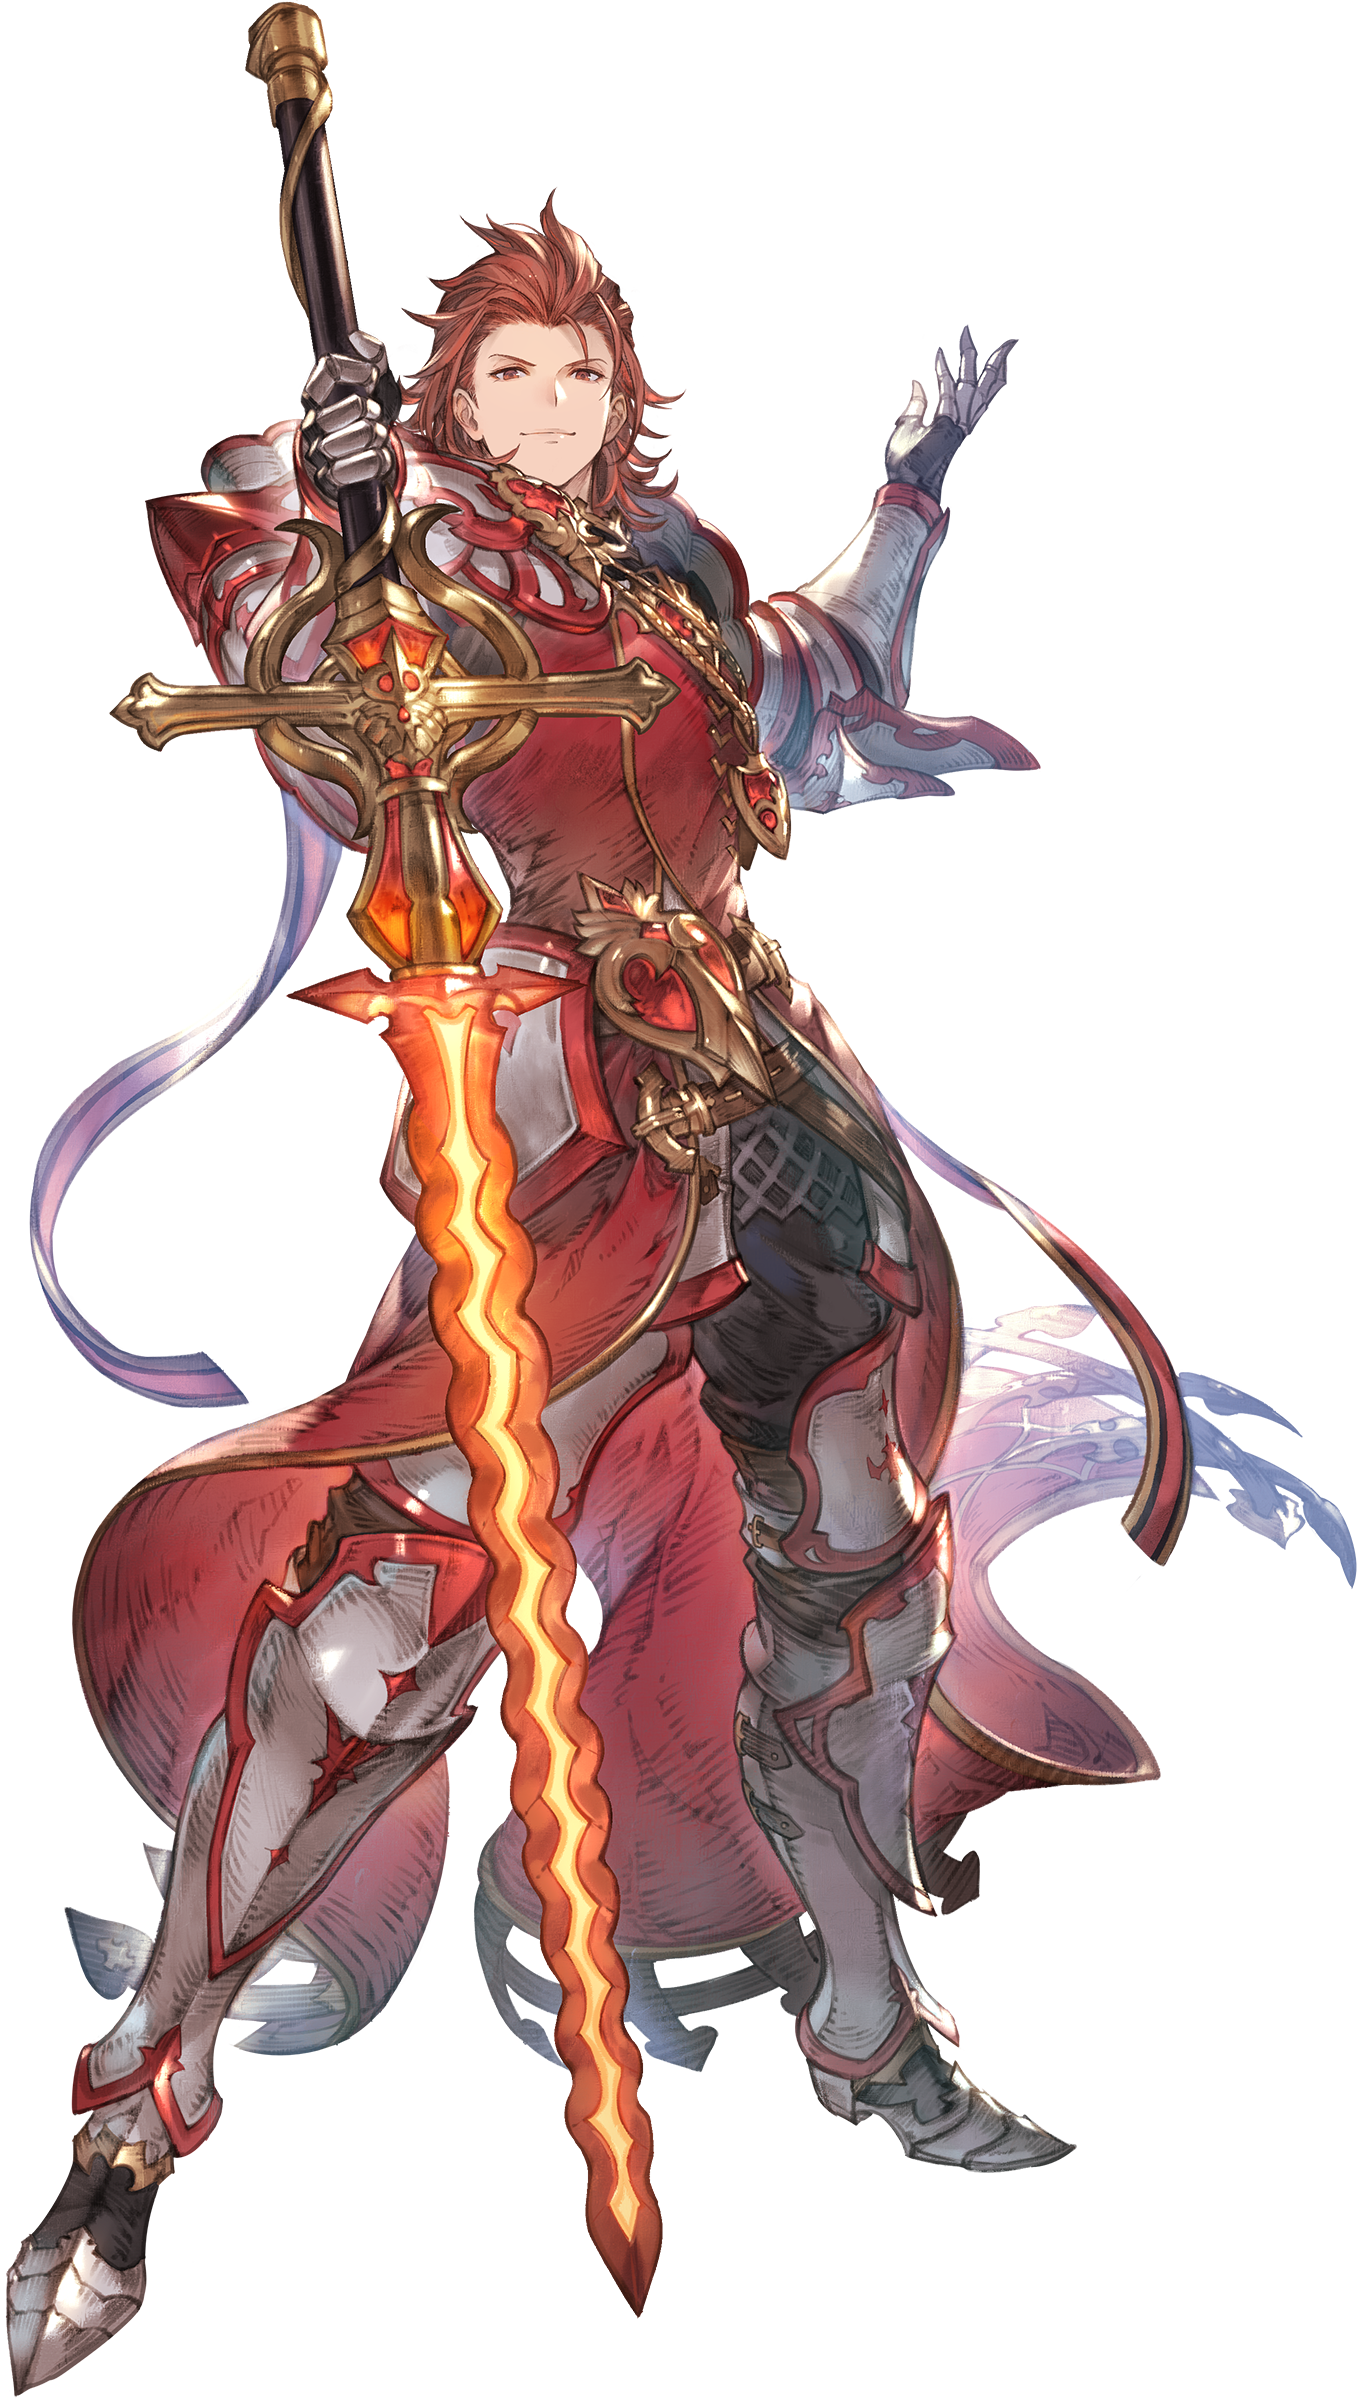 Photo of Percival from Granblue Fantasy Versus by Minaba Hideo